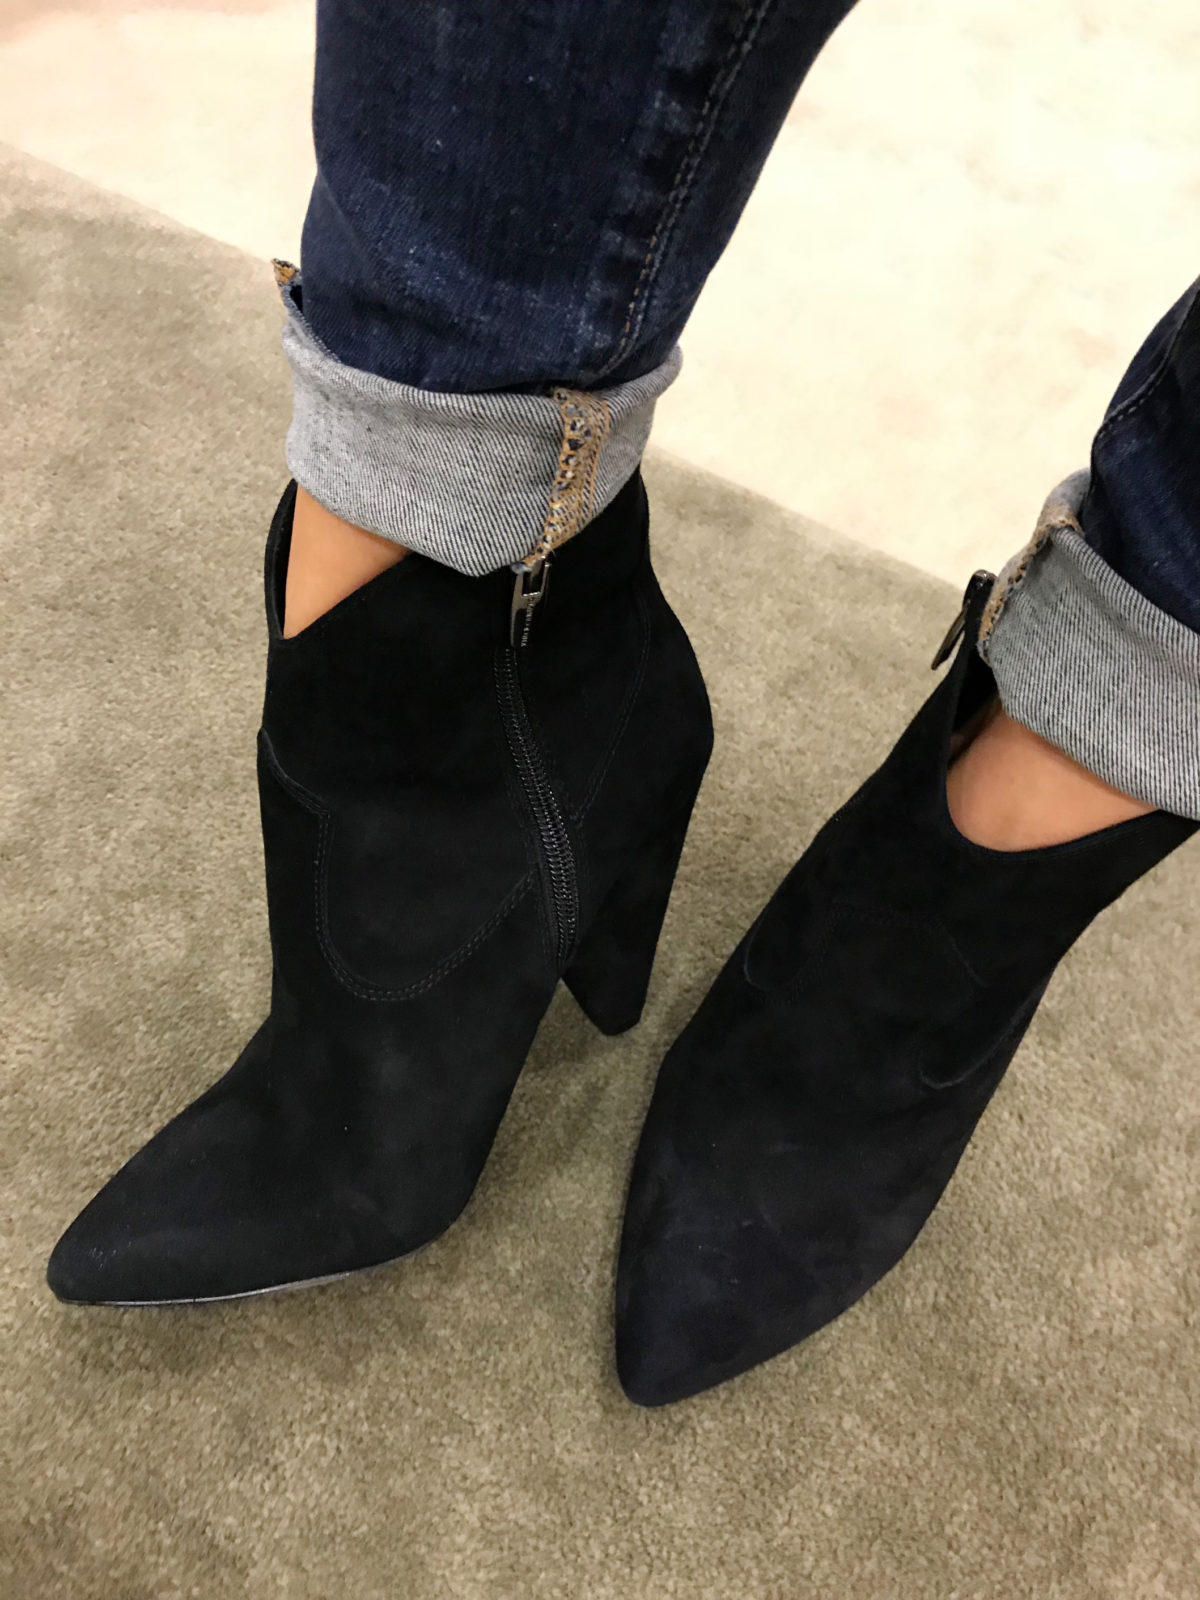 2018 nordstrom anniversary sale suede booties try on haul